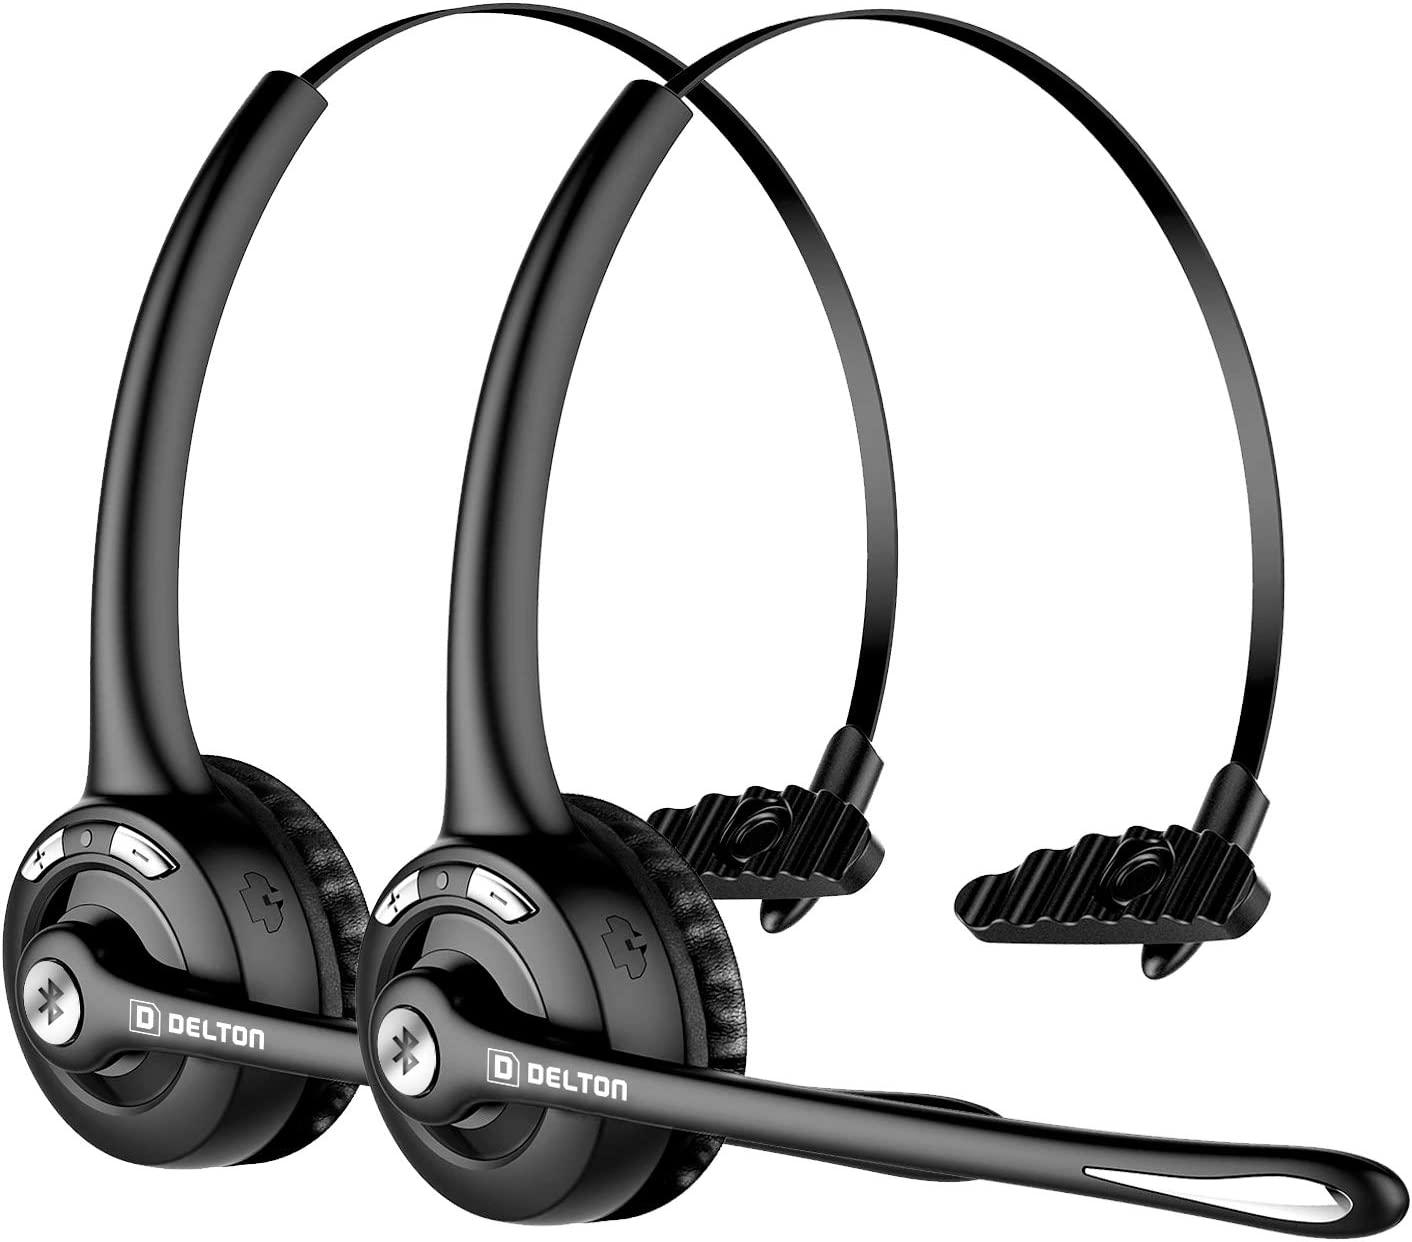 Delton Trucker Bluetooth Headset (2-Pack), Wireless Headphones w/Microphone